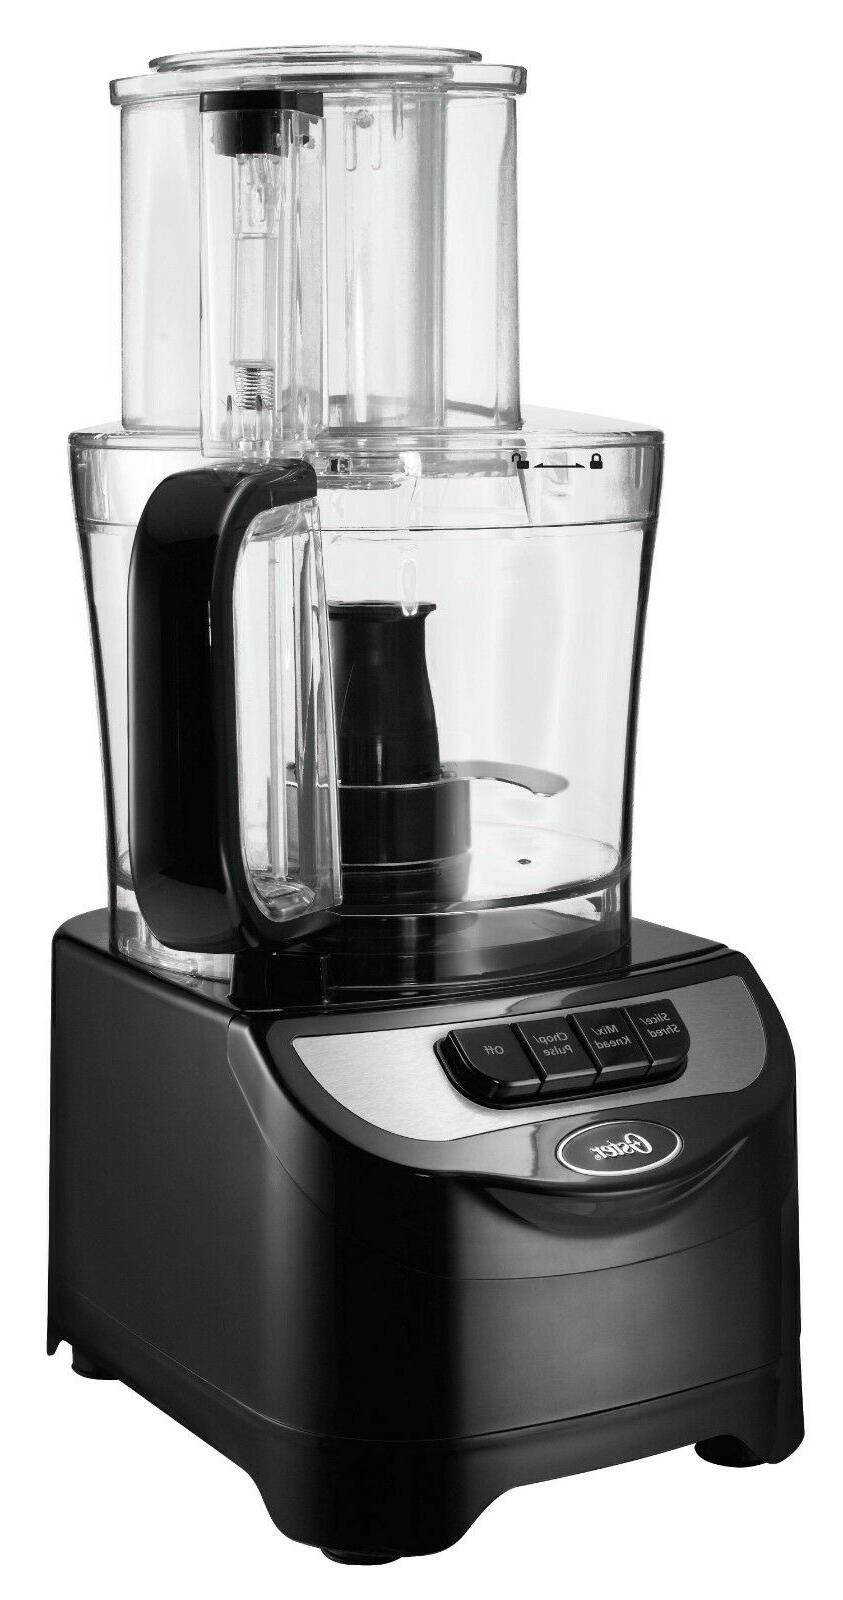 Oster 2-Speed Food Processor 10-Cup Capacity 500W Wide-mouth